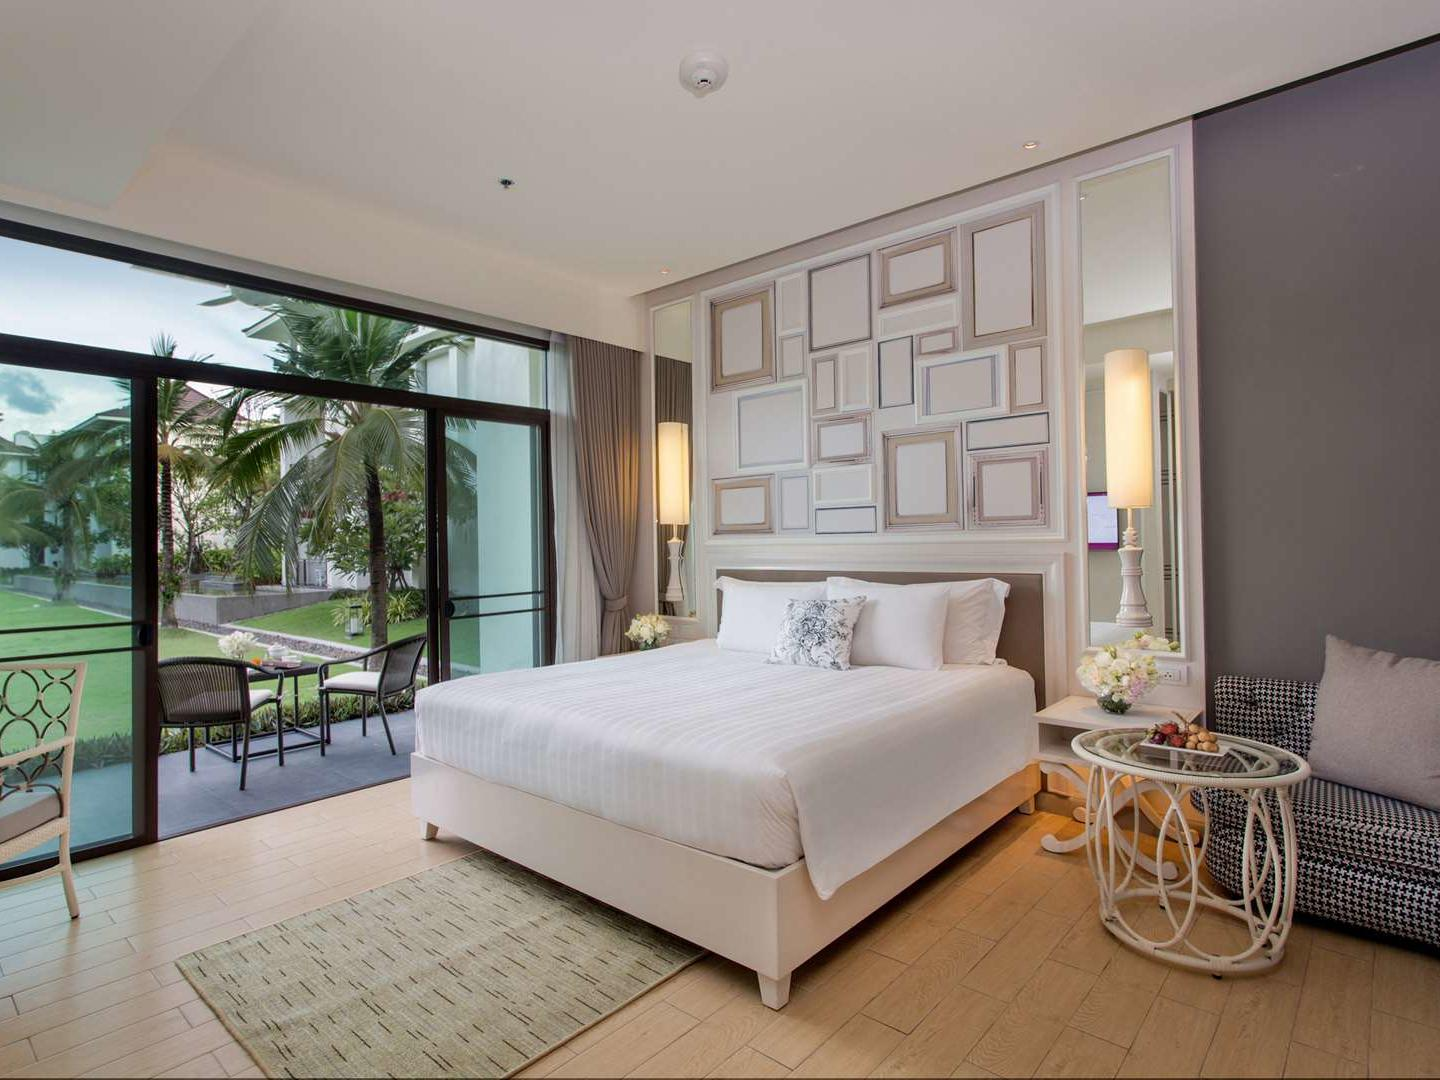 Terrace Garden View room at U Hotels and Resorts